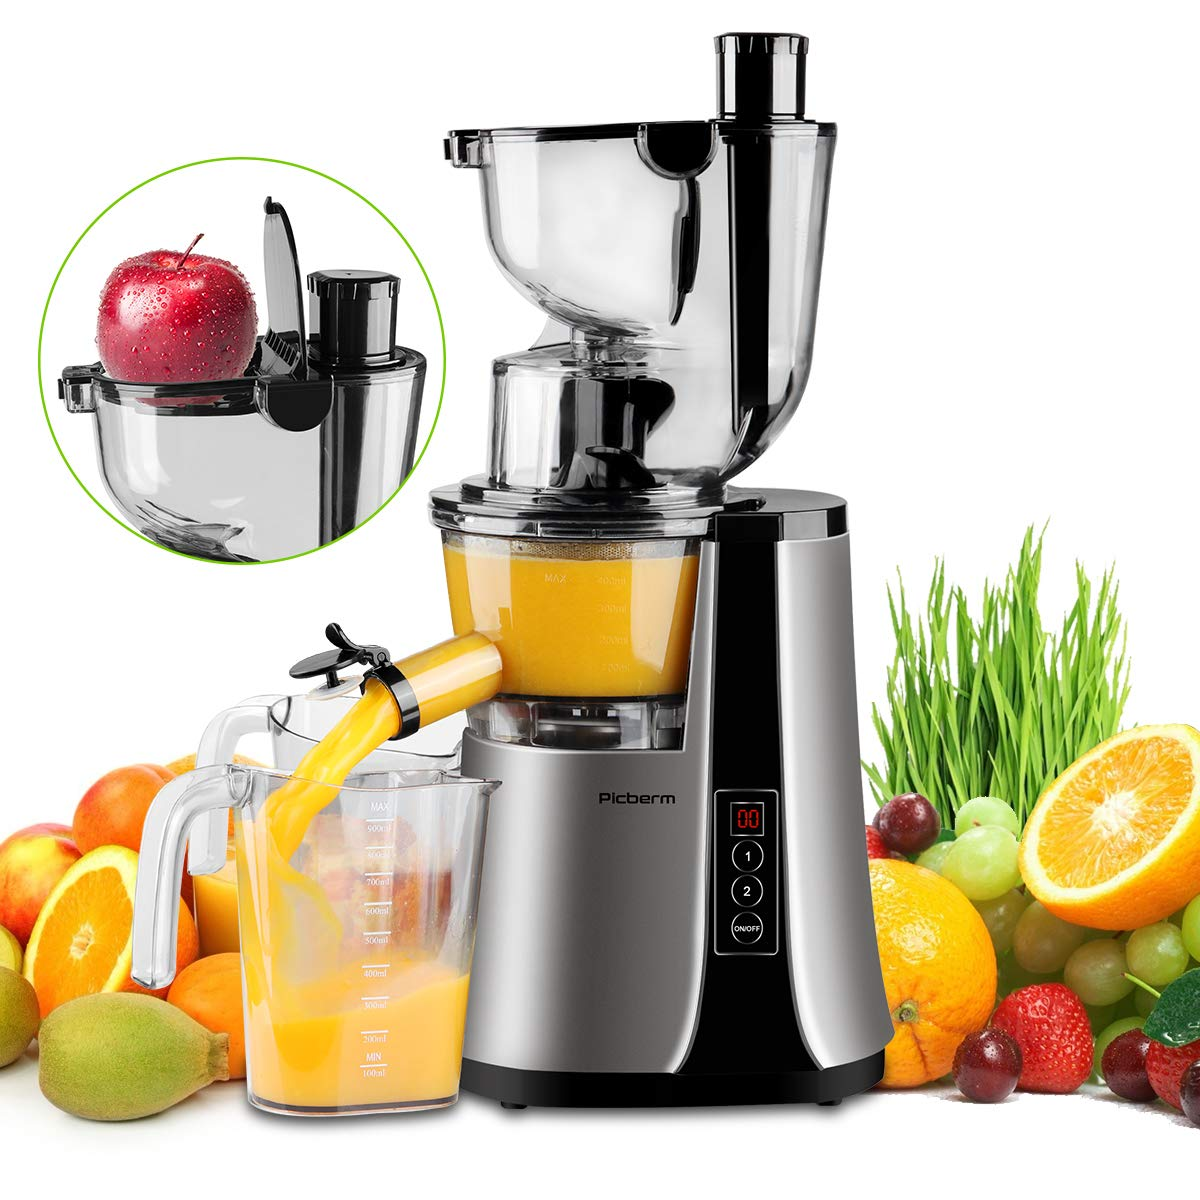 Wide Chute Slow Masticating Juicer Picberm Cold Press Juicer Extractor with Two Speed Modes, Juicer Machine for Higher Nutrient Fruit and Vegetable Juice, Quiet Motor BPA-FREE